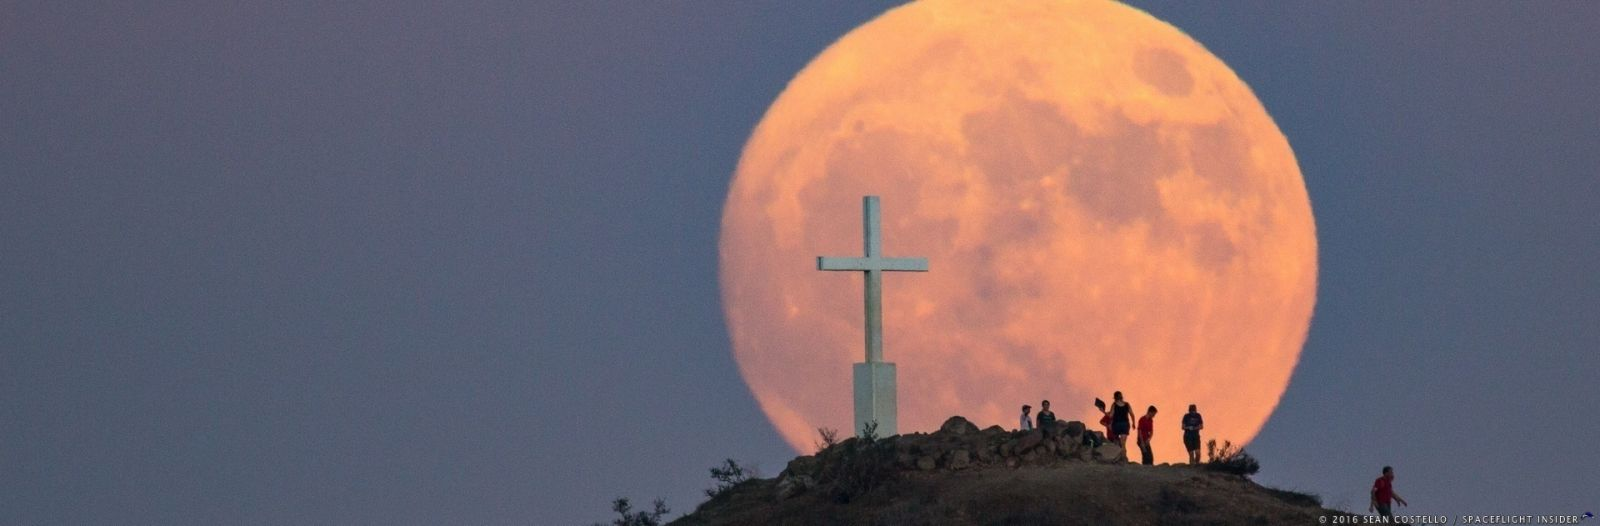 The 2016 supermoon as seen in the Santa Monica Mountains by SpaceFlight Insider's Sean Costello. Photo Credit: Sean Costello / SpaceFlight Insider